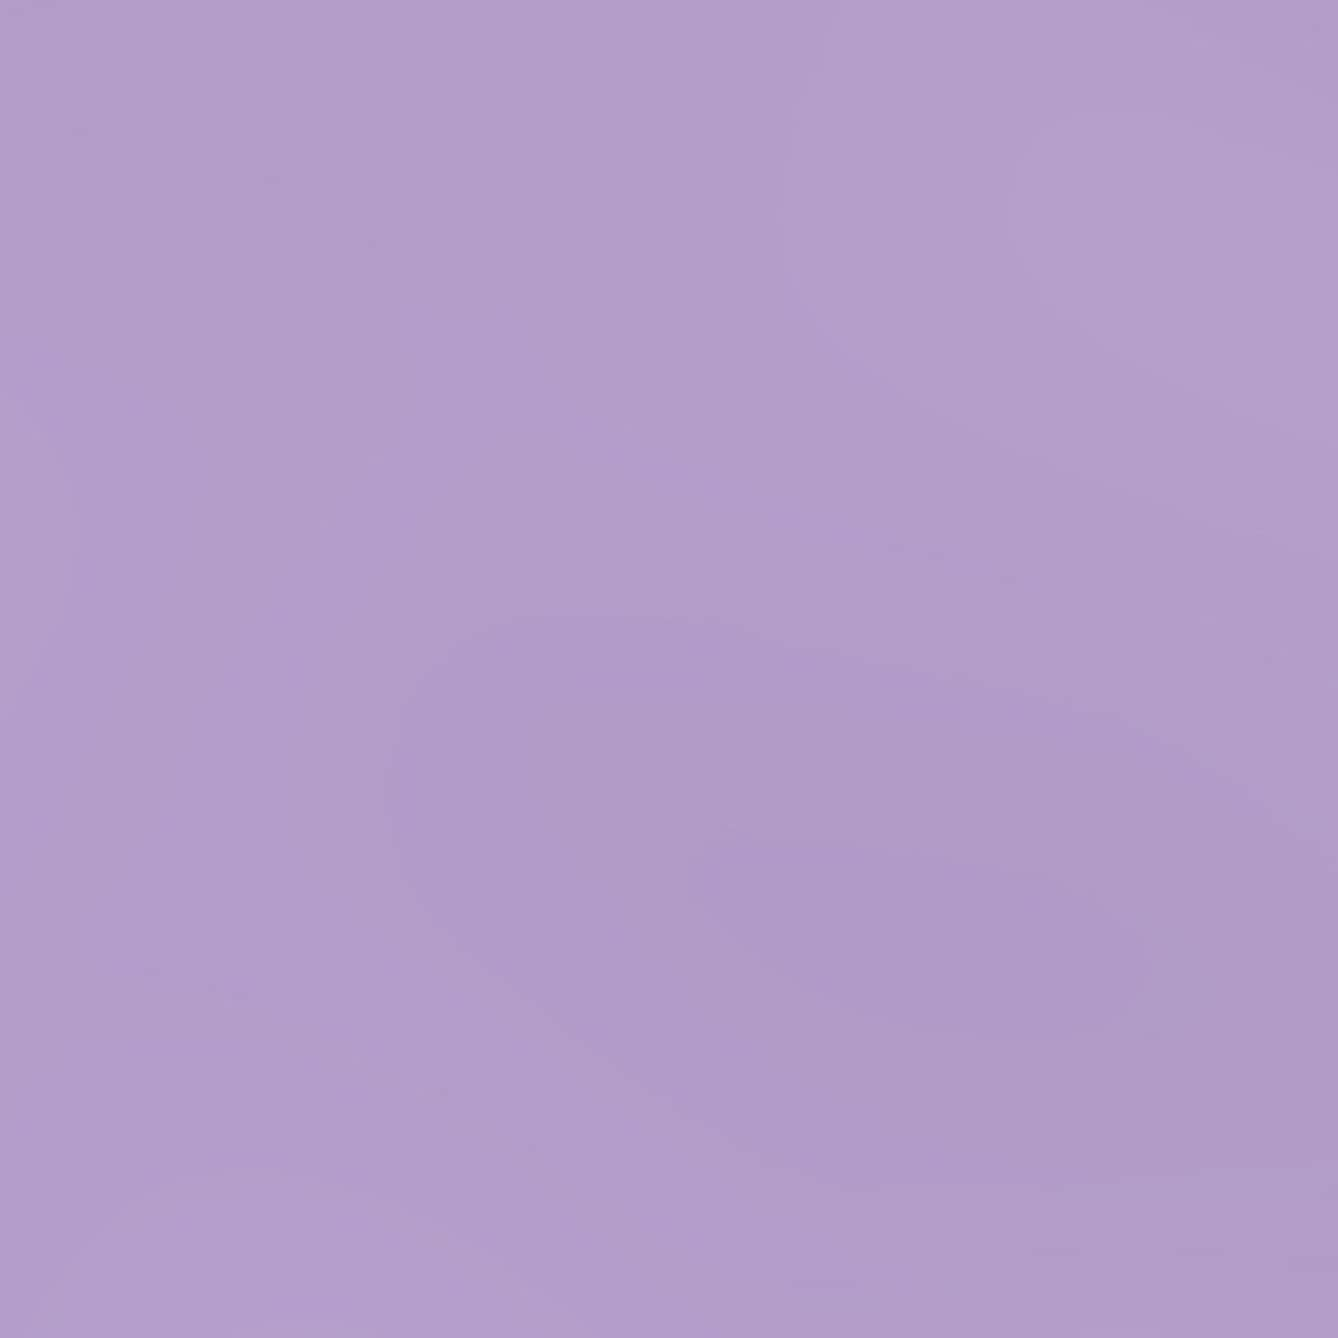 Bazzill Basics Paper 6-6106 Card Shoppe Heavy Weight Cardstock, 25 Sheets, 8.5 by 11-Inch, Sour Grape